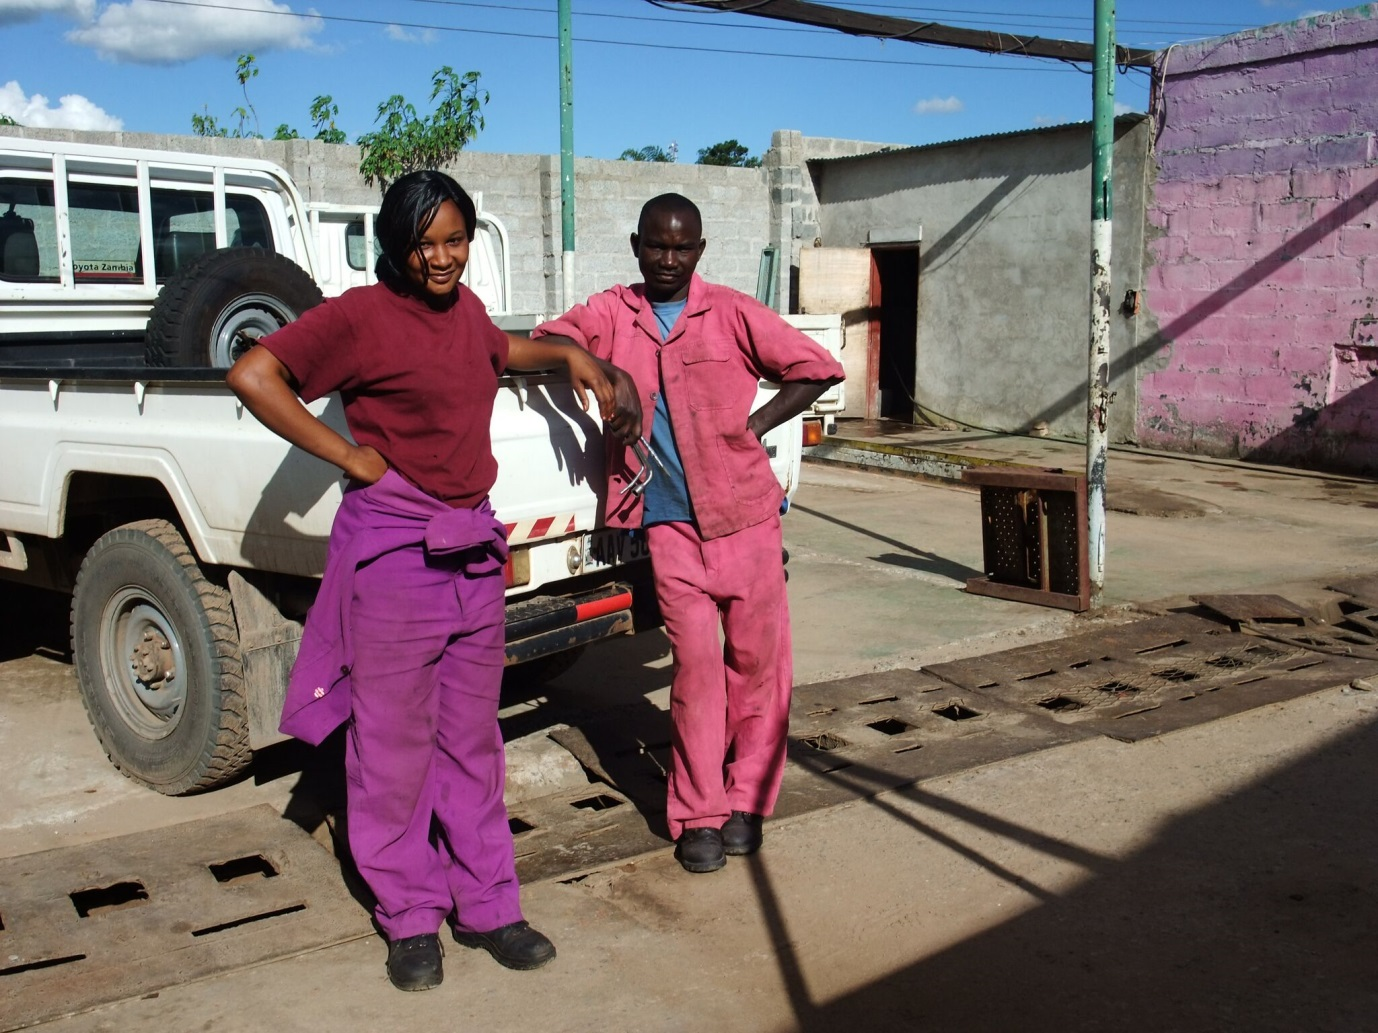 In modern day Zambia, women can now as car mechanic or other roles generally dominated by men Photo Credit: Alice Evans